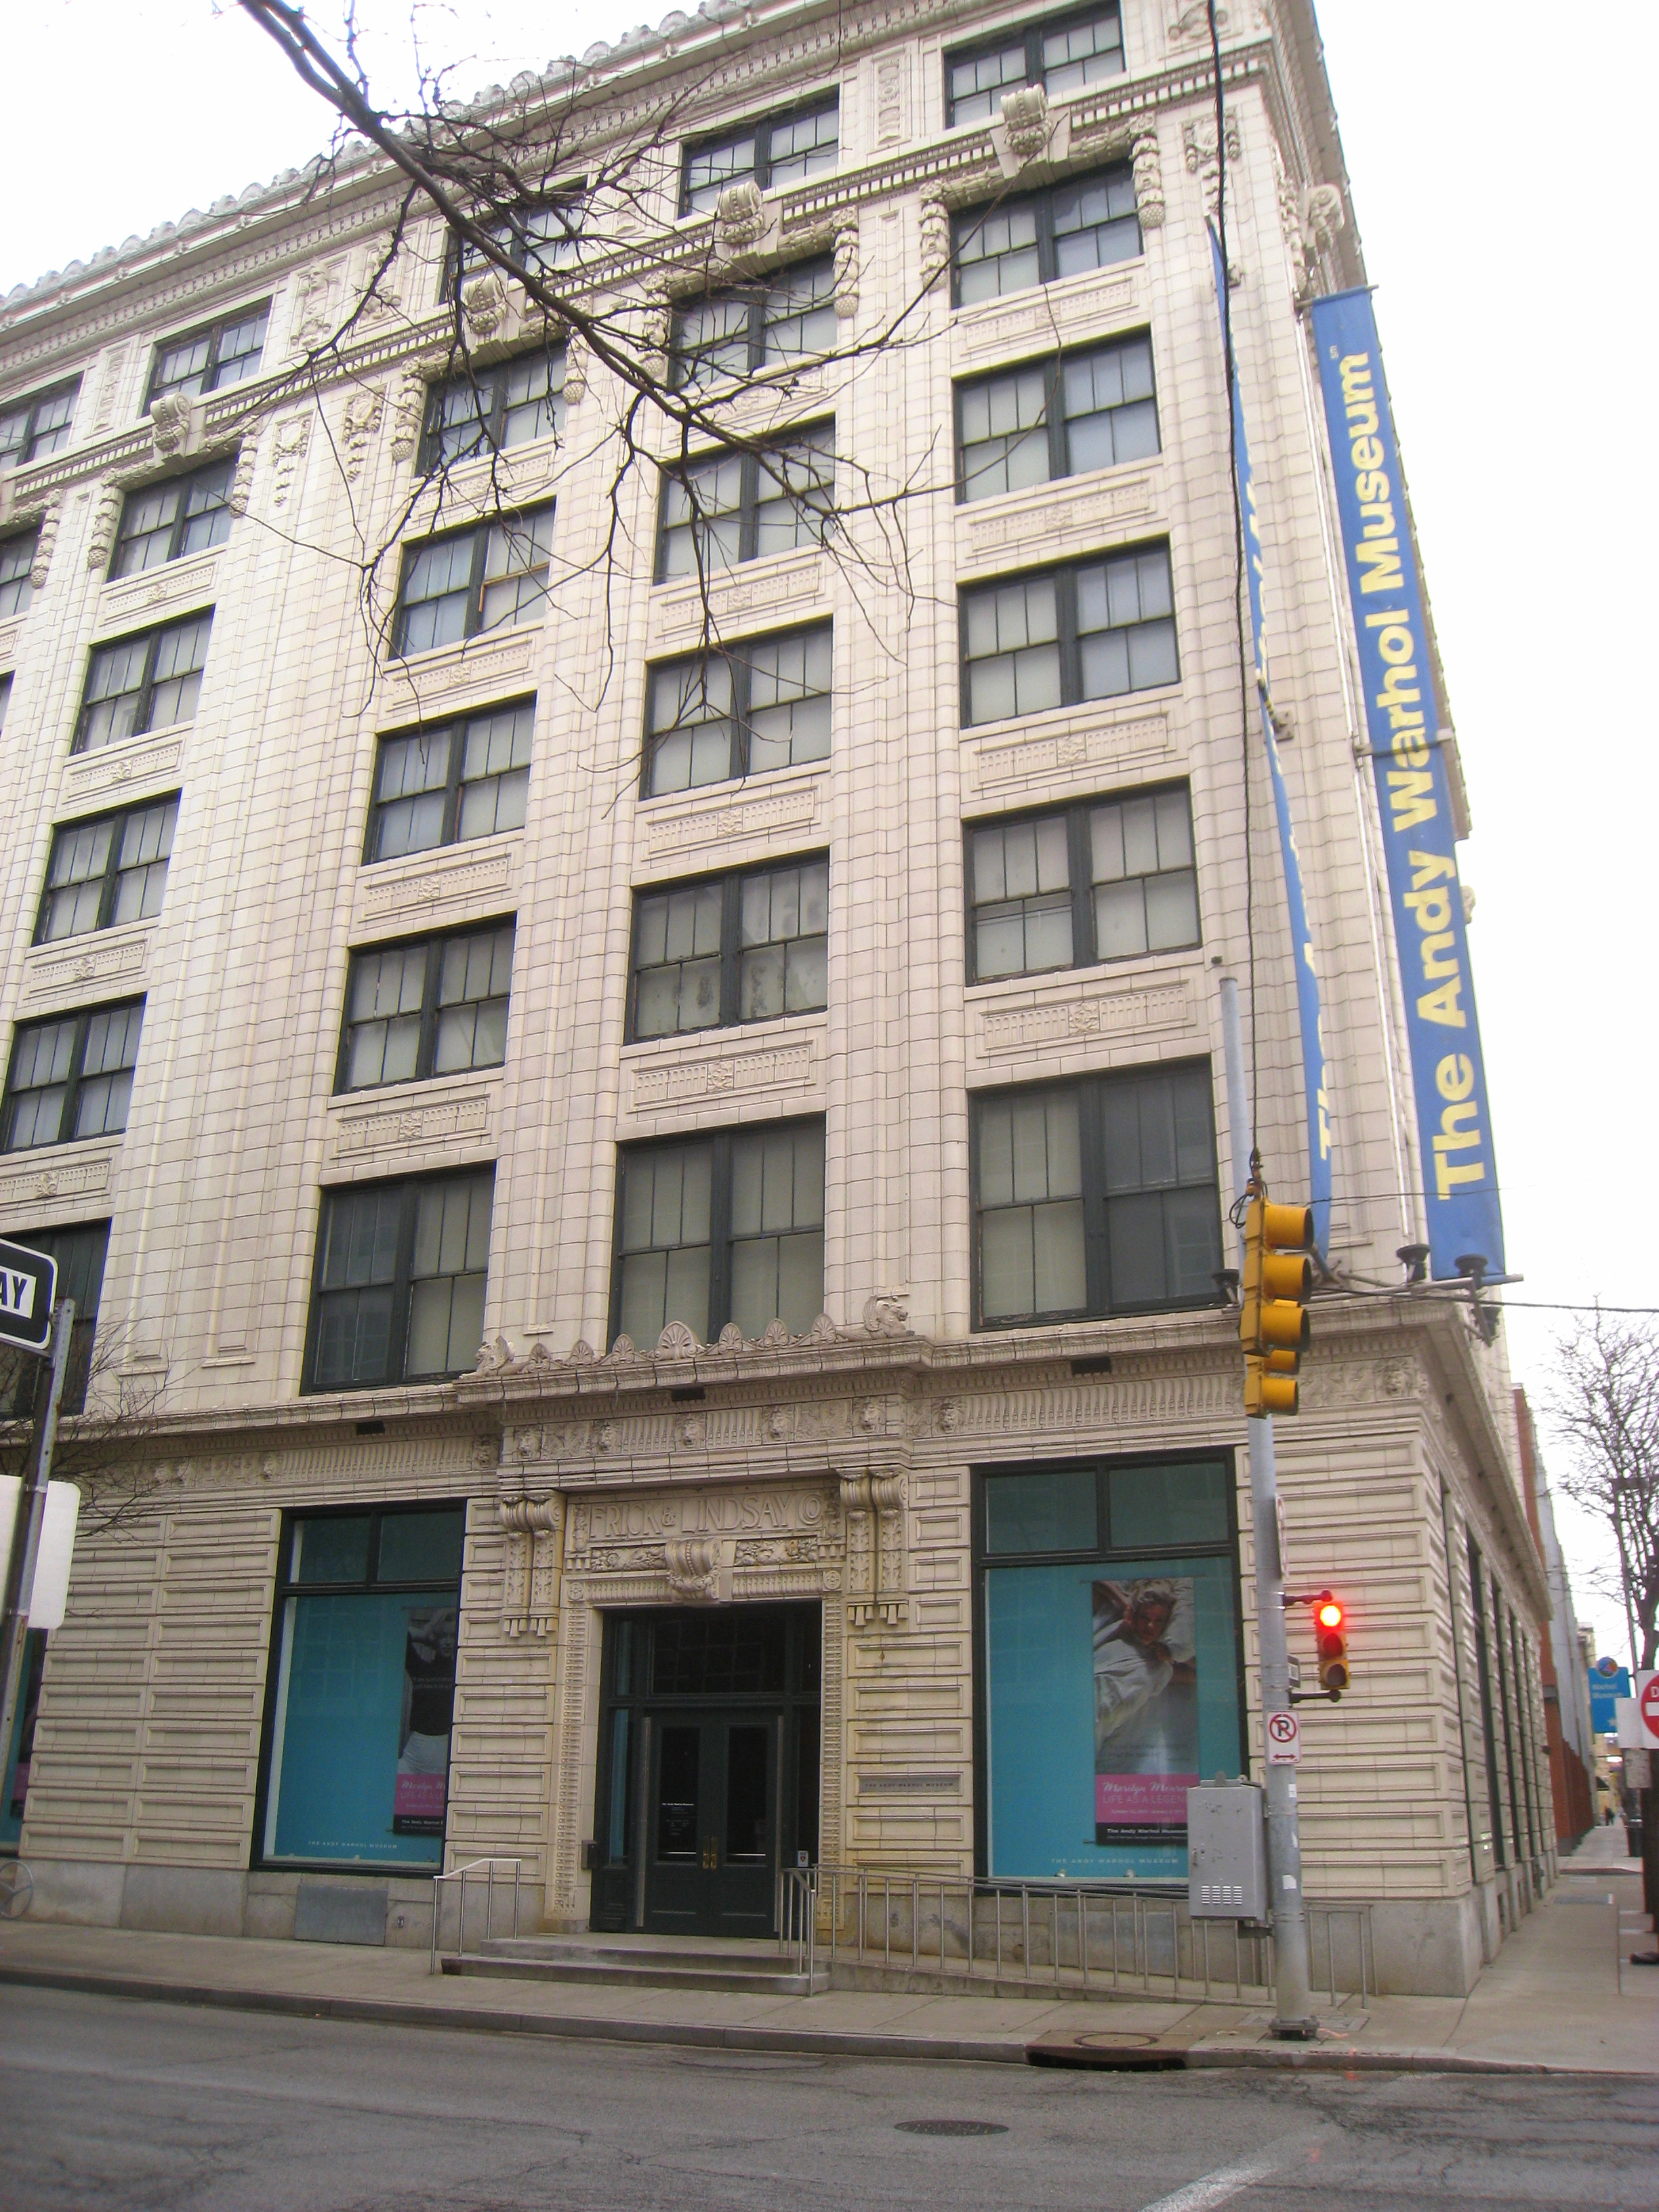 andy warhol museum - HD 2448×3264